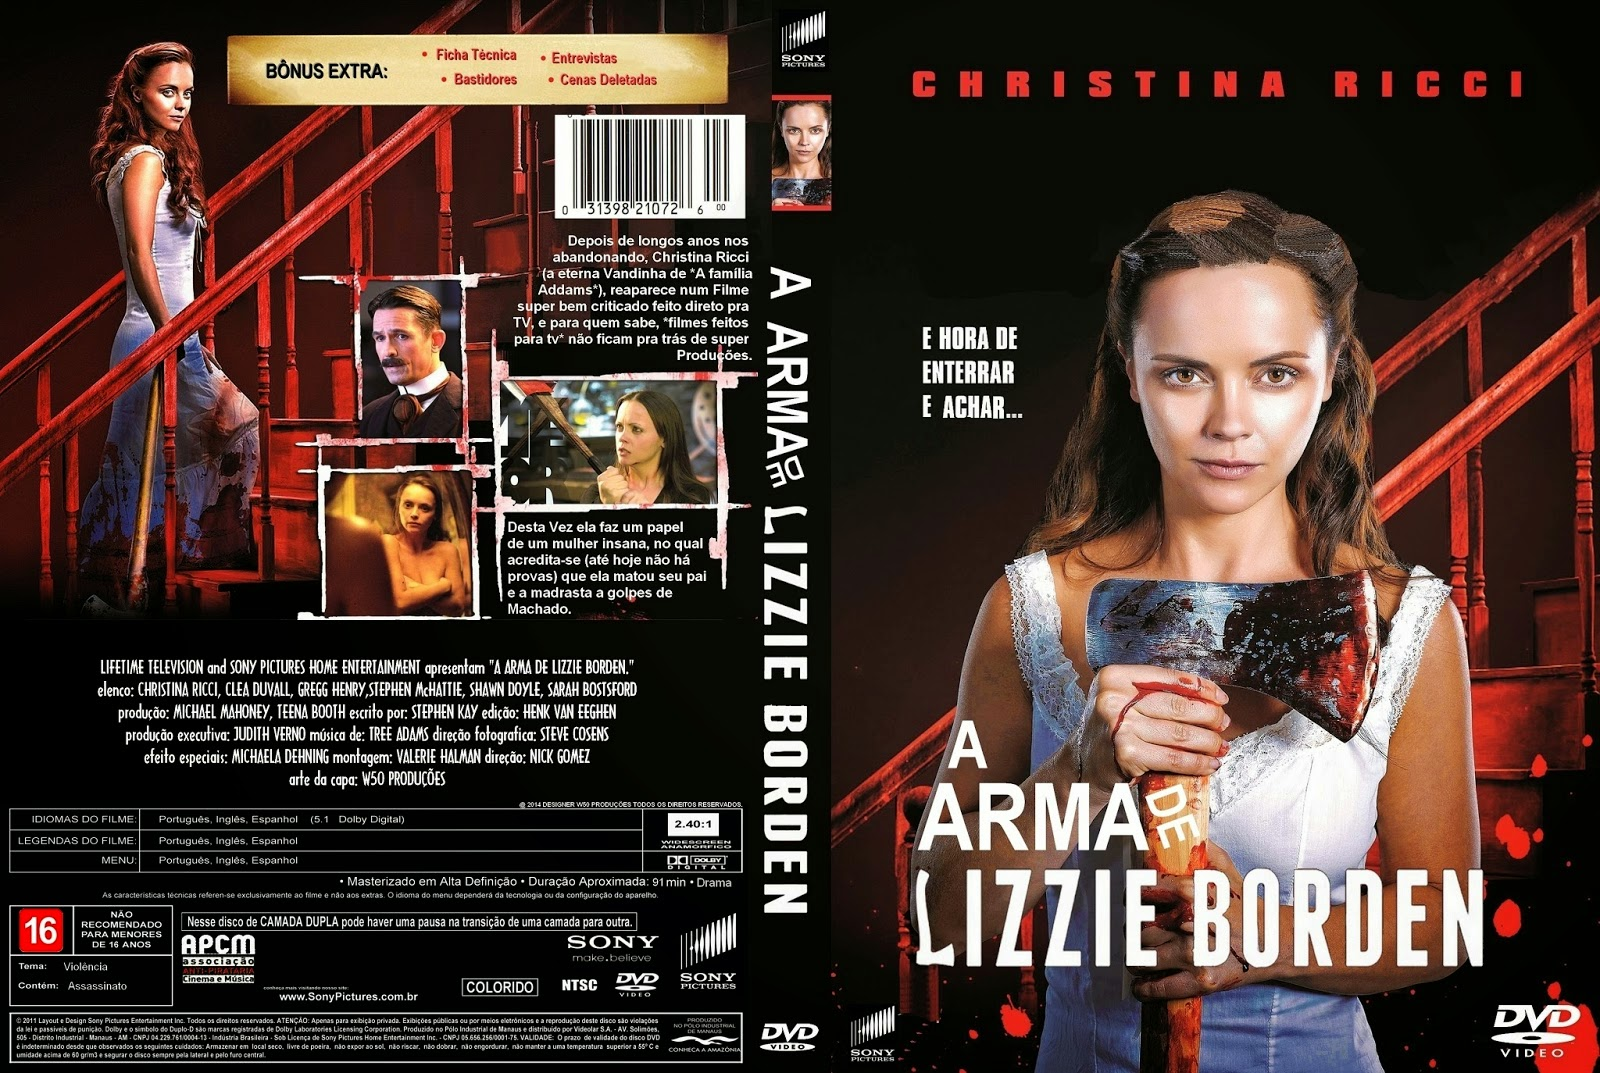 Borden download legend lizzie movie